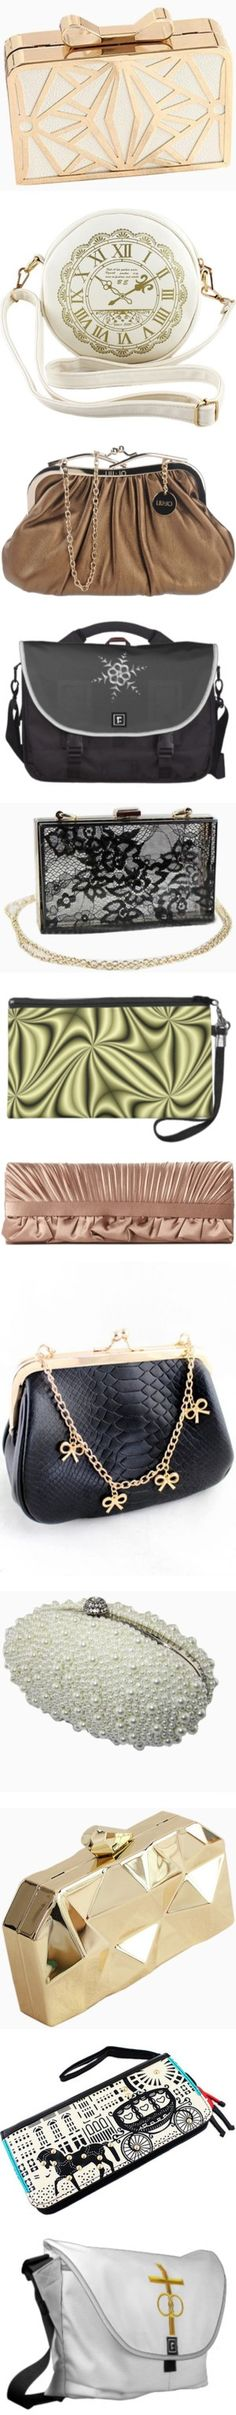 * #PURSES: #SILVER, #GOLD, #BLACK, #WHITE, #BROWN * by artist4god-rose-santuci-sofranko on Polyvore featuring polyvore, fashion, bags, handbags, choies, сумки, white handbags, lock handbag, locking purse, bow handbag, white purse, shoulder bags, sheinside, white, clock, pu leather handbag, print handbags, vintage purse, pattern purse, bronze, metallic shoulder bag, shoulder strap bag, mini handbags, mini shoulder bag, metallic handbags, accessories, purses, totes, clutches, choies bag…